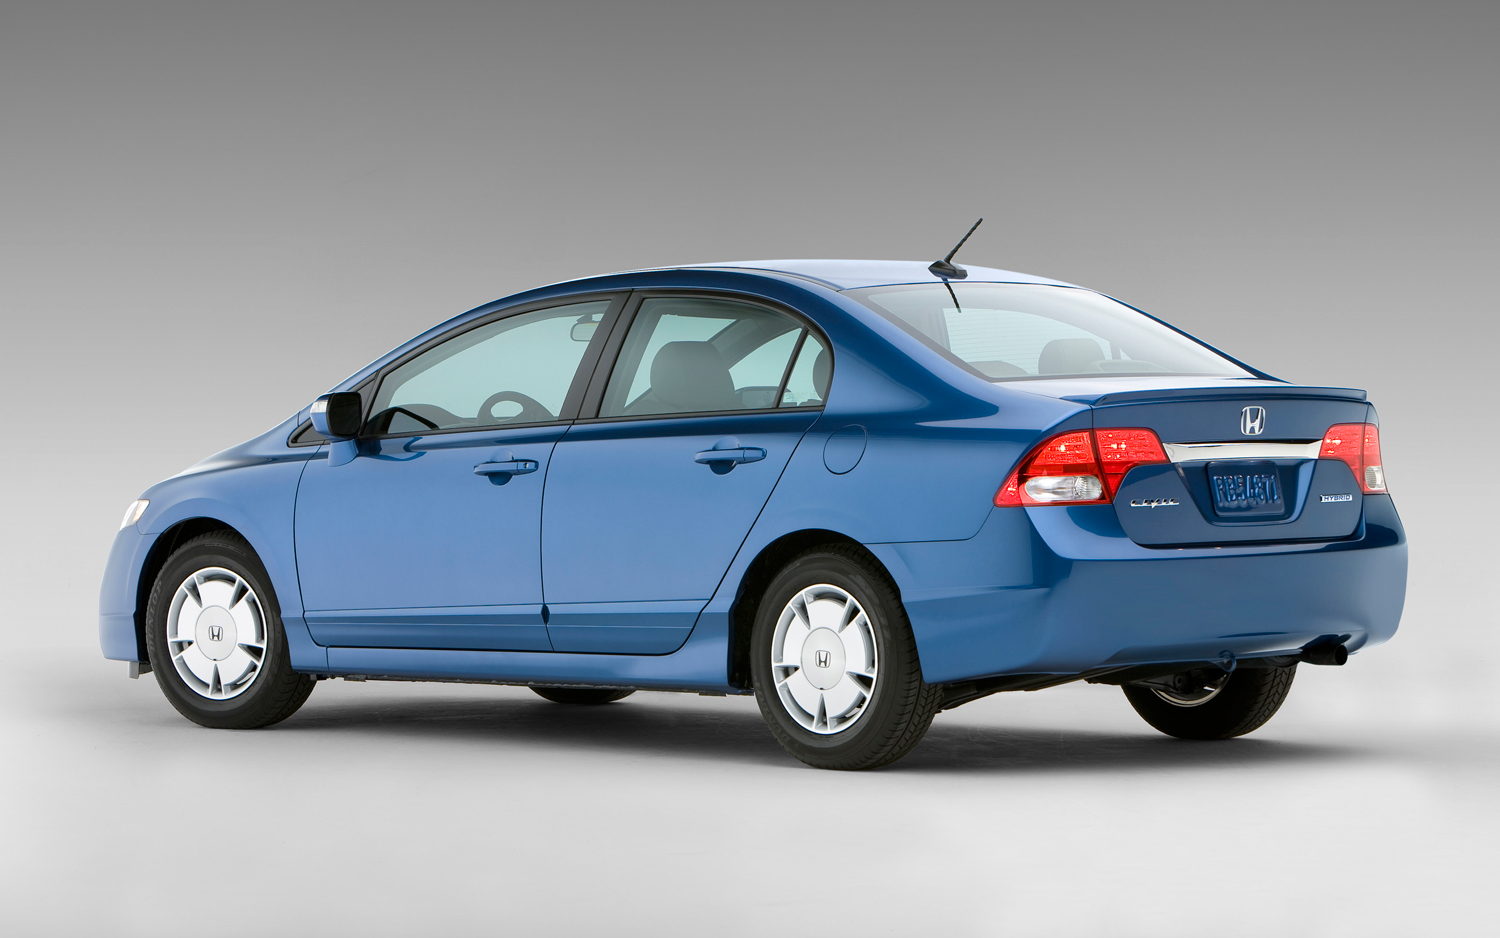 Lovely Civic Hybrid Owner To Fight Honda In Smalls Claims Court, Unhappy With Fuel  Economy